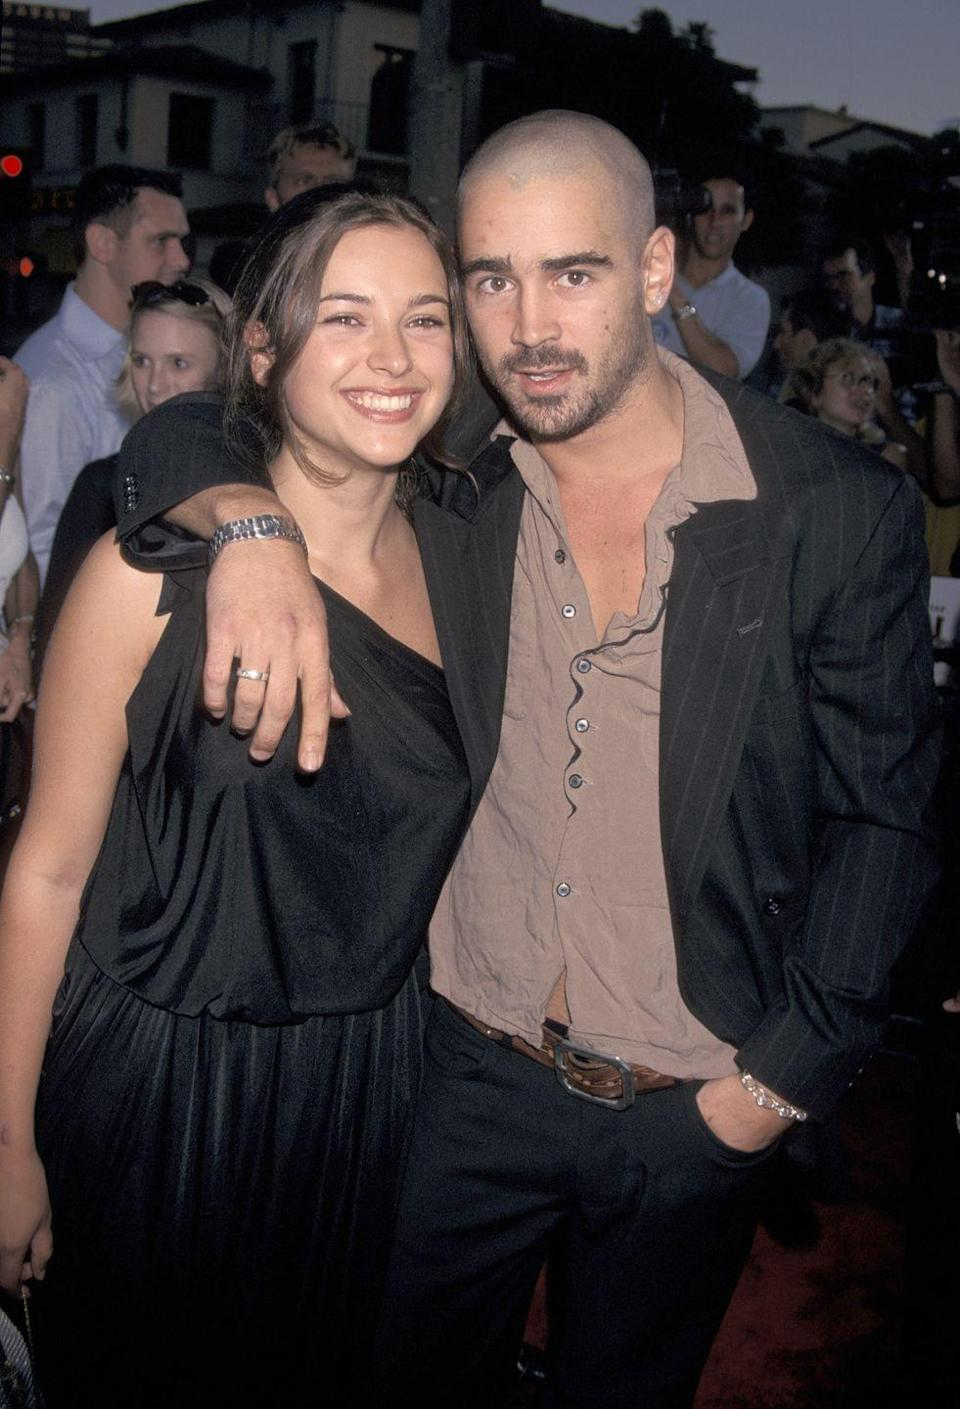 """<p>Back in 2001, when Colin was 25, he wed English actress Amelia, then 19. They separated after six months (and Amelia went on to marry Jamie Dornan), but Amelia claims the marriage was never legal. <a href=""""https://us.blastingnews.com/showbiz-tv/2017/07/jamie-dornans-wife-amelia-warner-says-marriage-to-colin-farrell-wasnt-legal-001825353.html"""" rel=""""nofollow noopener"""" target=""""_blank"""" data-ylk=""""slk:She told"""" class=""""link rapid-noclick-resp"""">She told </a><em><a href=""""https://us.blastingnews.com/showbiz-tv/2017/07/jamie-dornans-wife-amelia-warner-says-marriage-to-colin-farrell-wasnt-legal-001825353.html"""" rel=""""nofollow noopener"""" target=""""_blank"""" data-ylk=""""slk:The Sun"""" class=""""link rapid-noclick-resp"""">The Sun</a></em>, """"We had a ceremony on a beach in Tahiti that was by no means legal and we knew it wasn't....It was just a thing we did on holiday.""""</p>"""